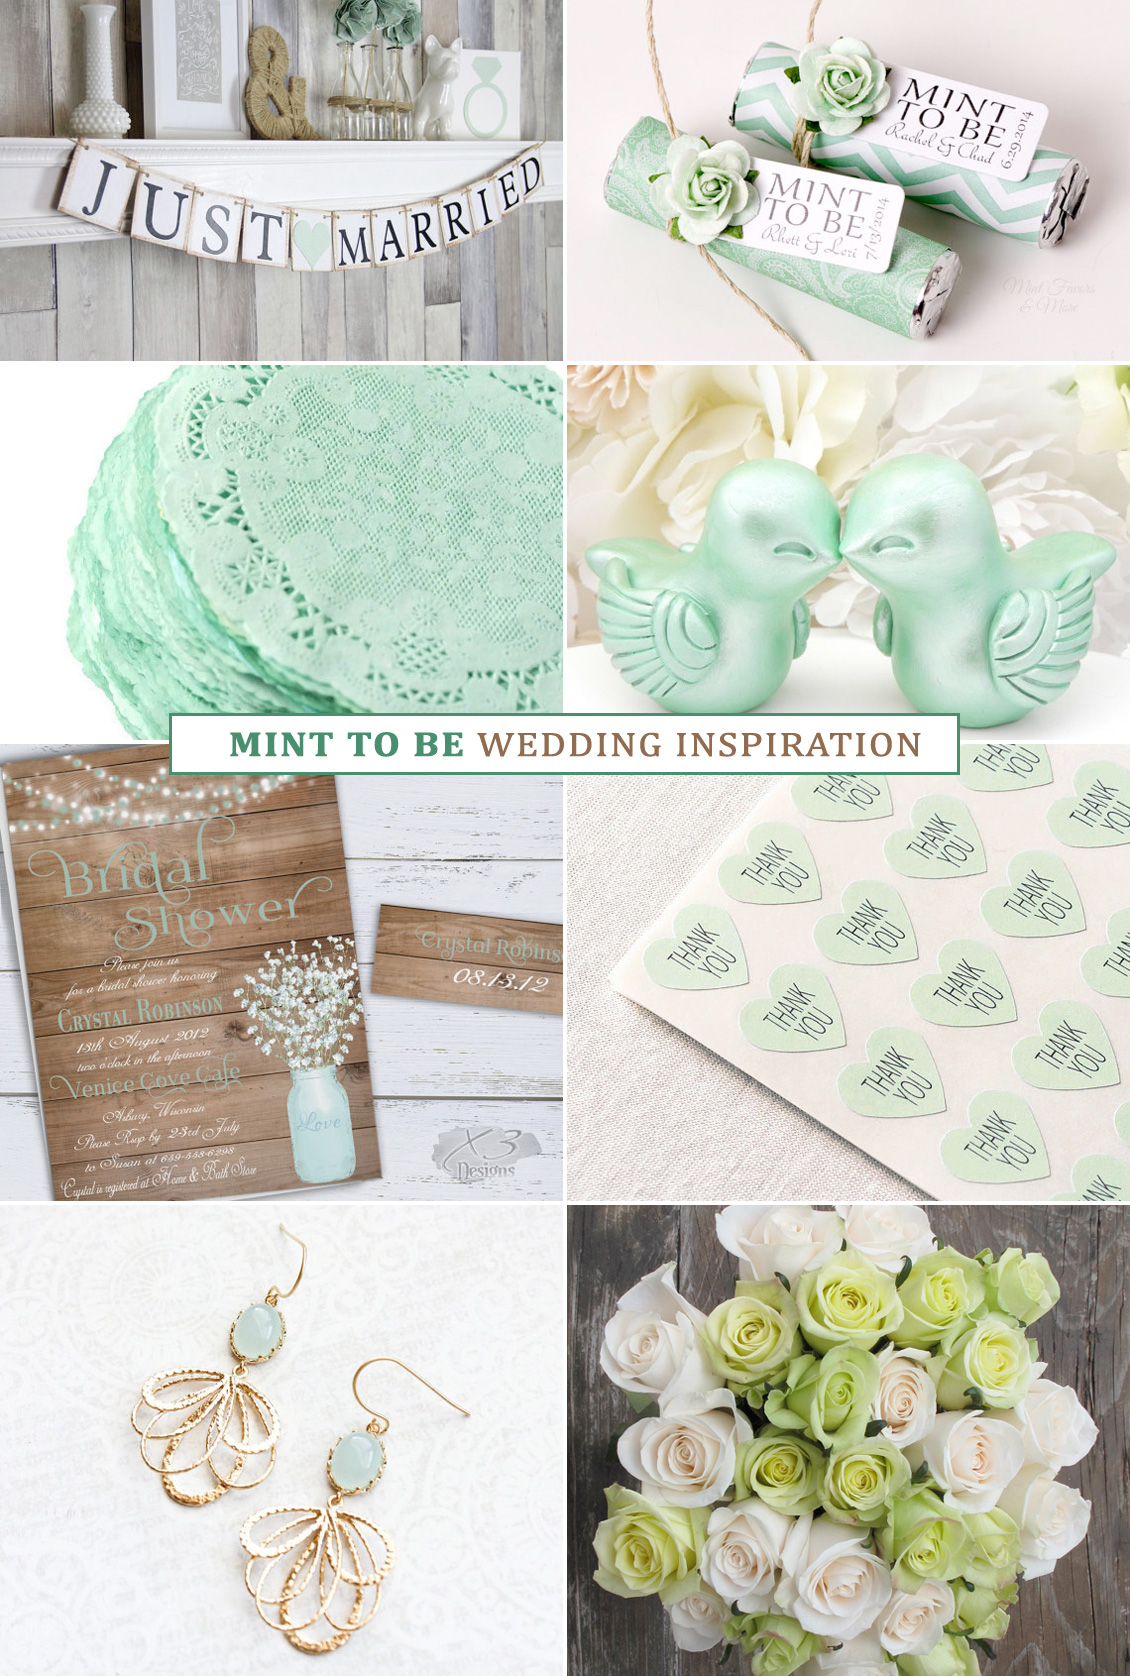 Mint to Be Wedding Inspiration Board - featuring handmade artists